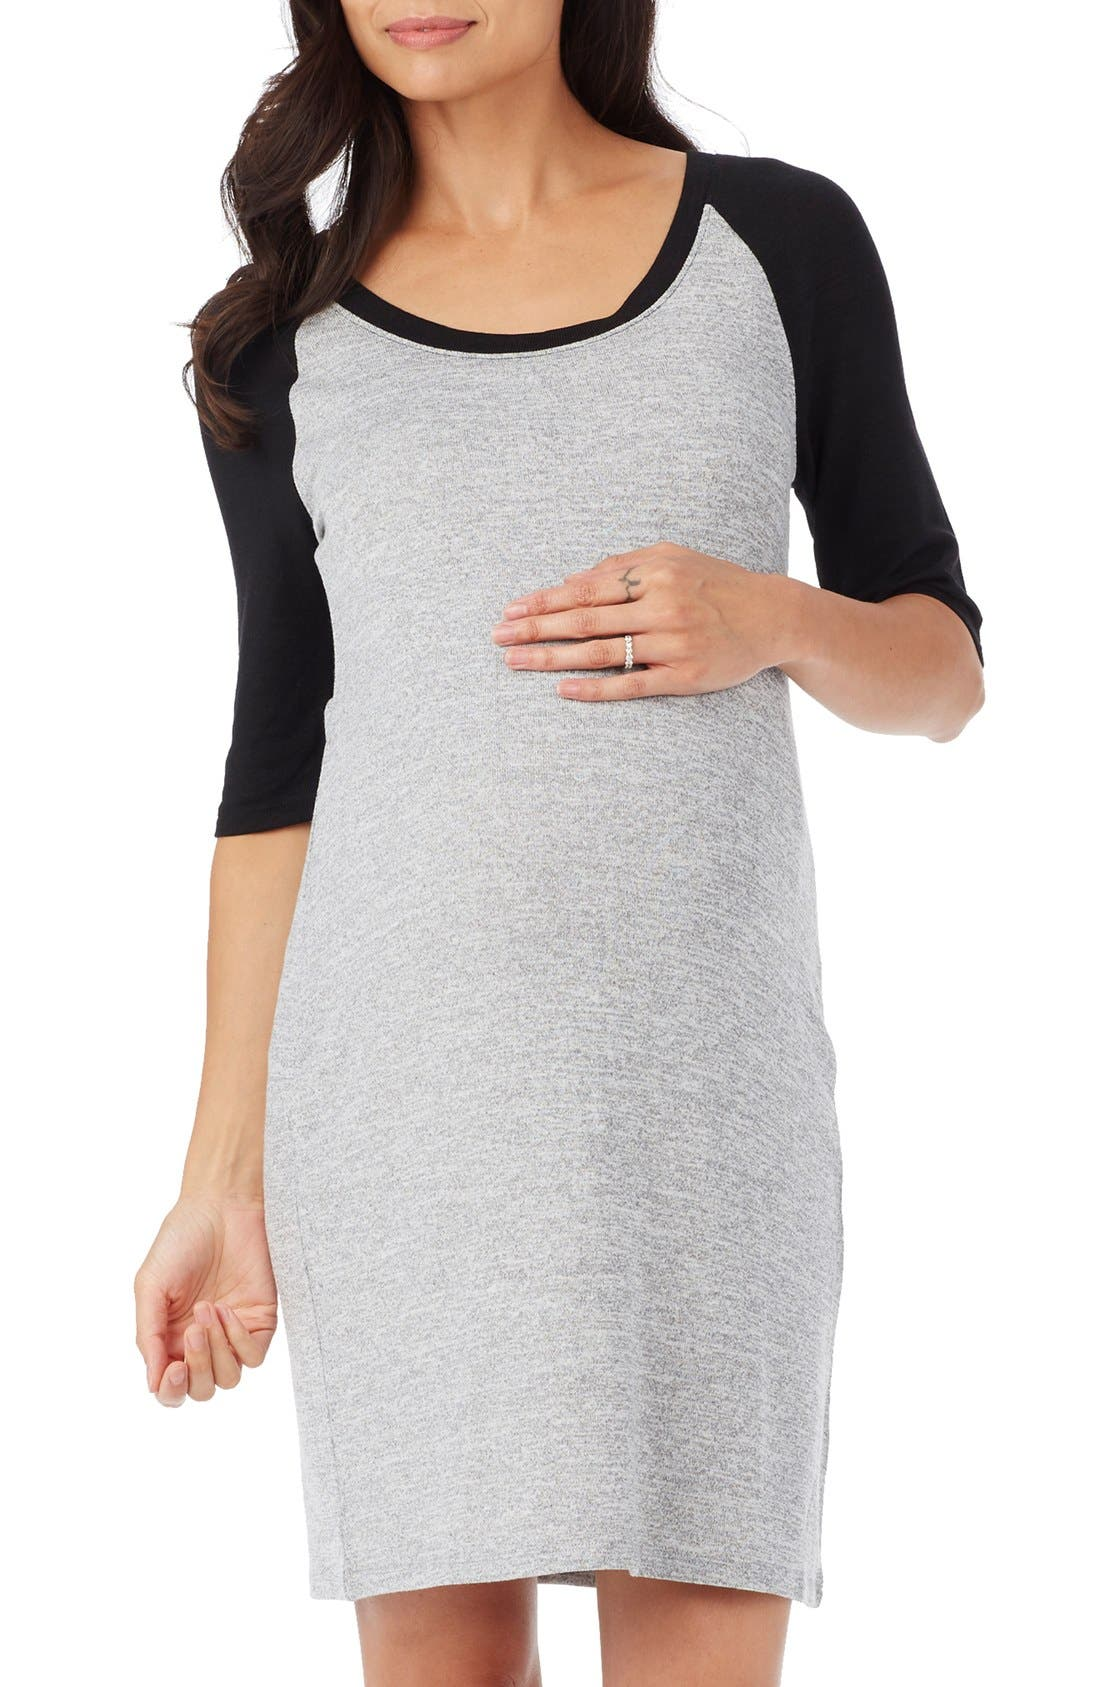 'Derek' Raglan Sleeve Maternity Dress,                             Main thumbnail 1, color,                             HEATHER GREY/ BLACK COMBO